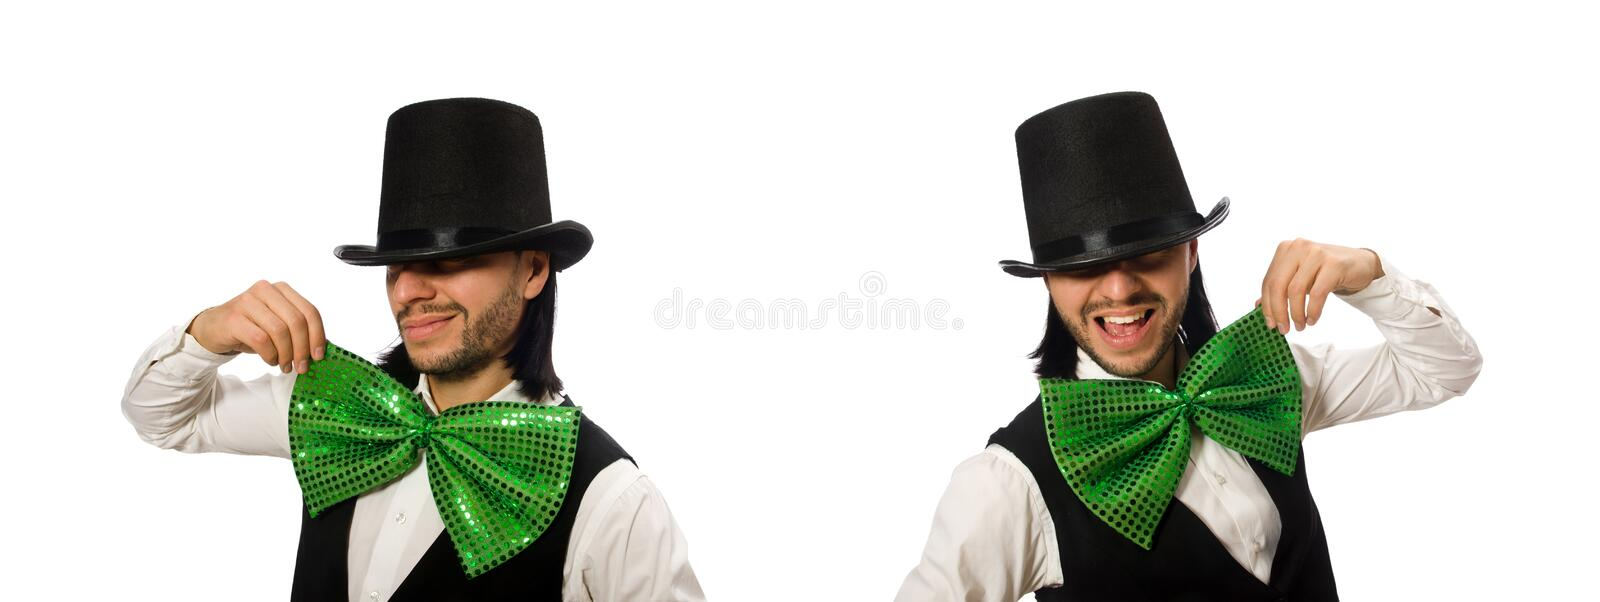 Man with big green bow tie in funny concept royalty free stock photography